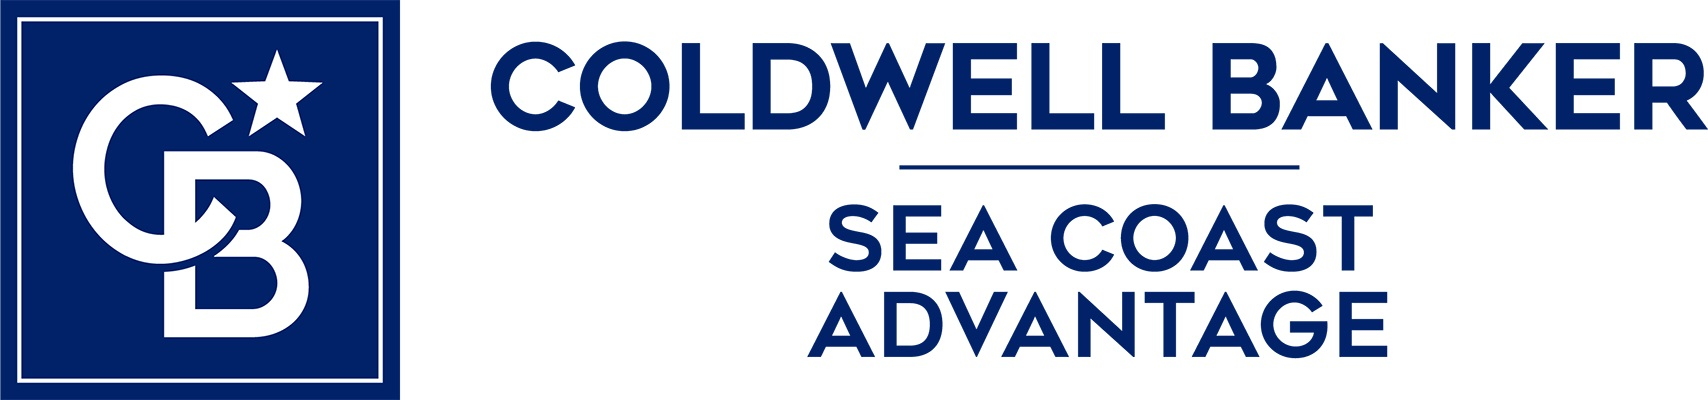 Monroe Enzor - Coldwell Banker Sea Coast Advantage Realty Logo